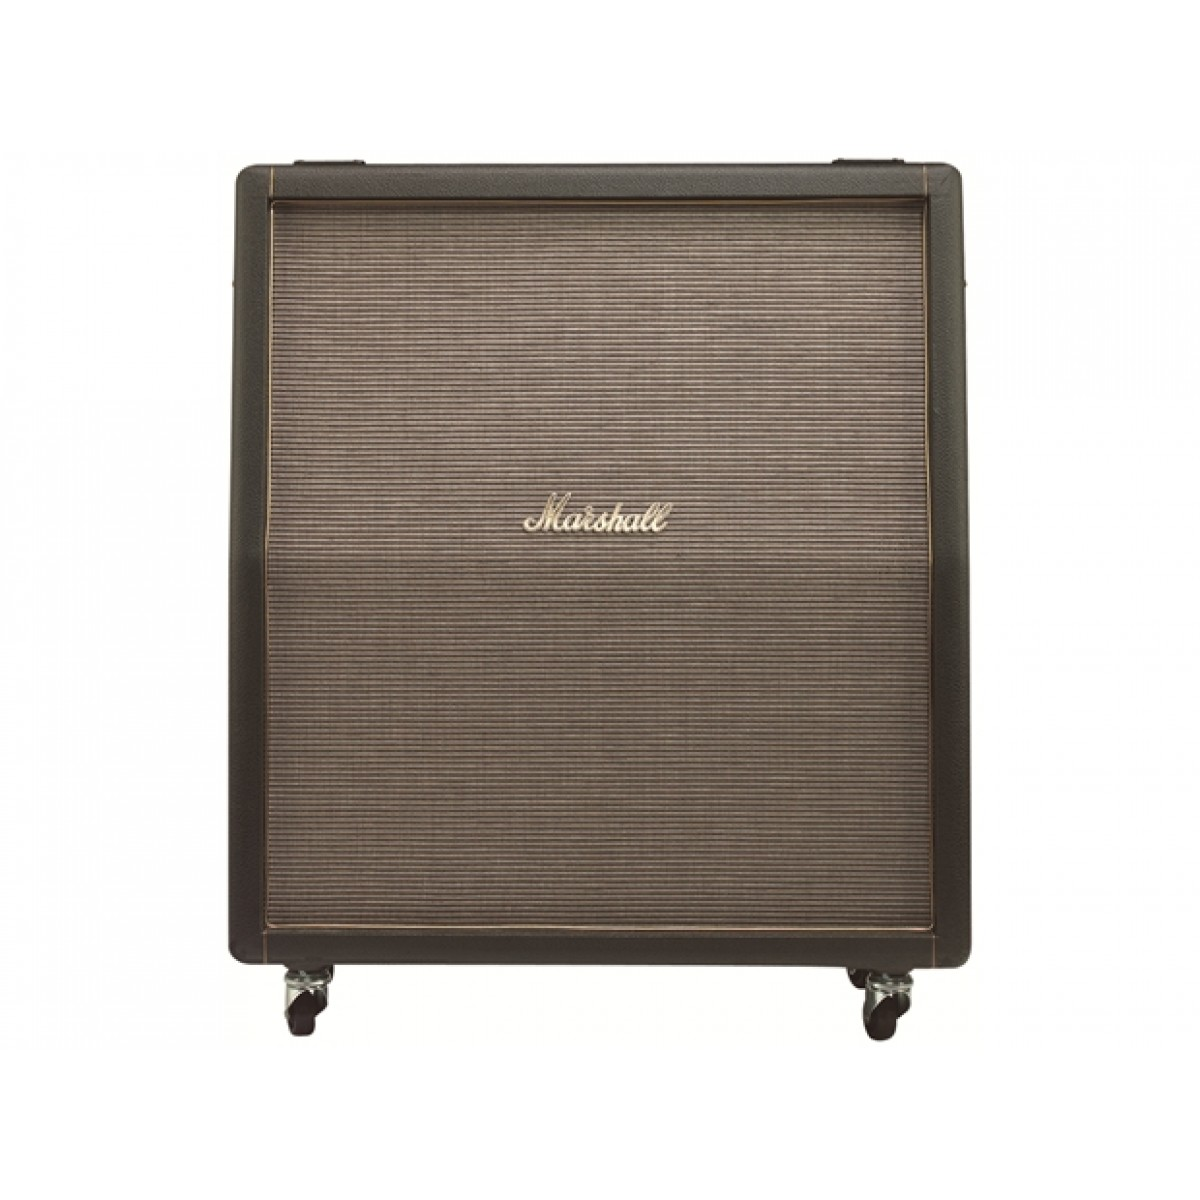 dating vintage marshall amps